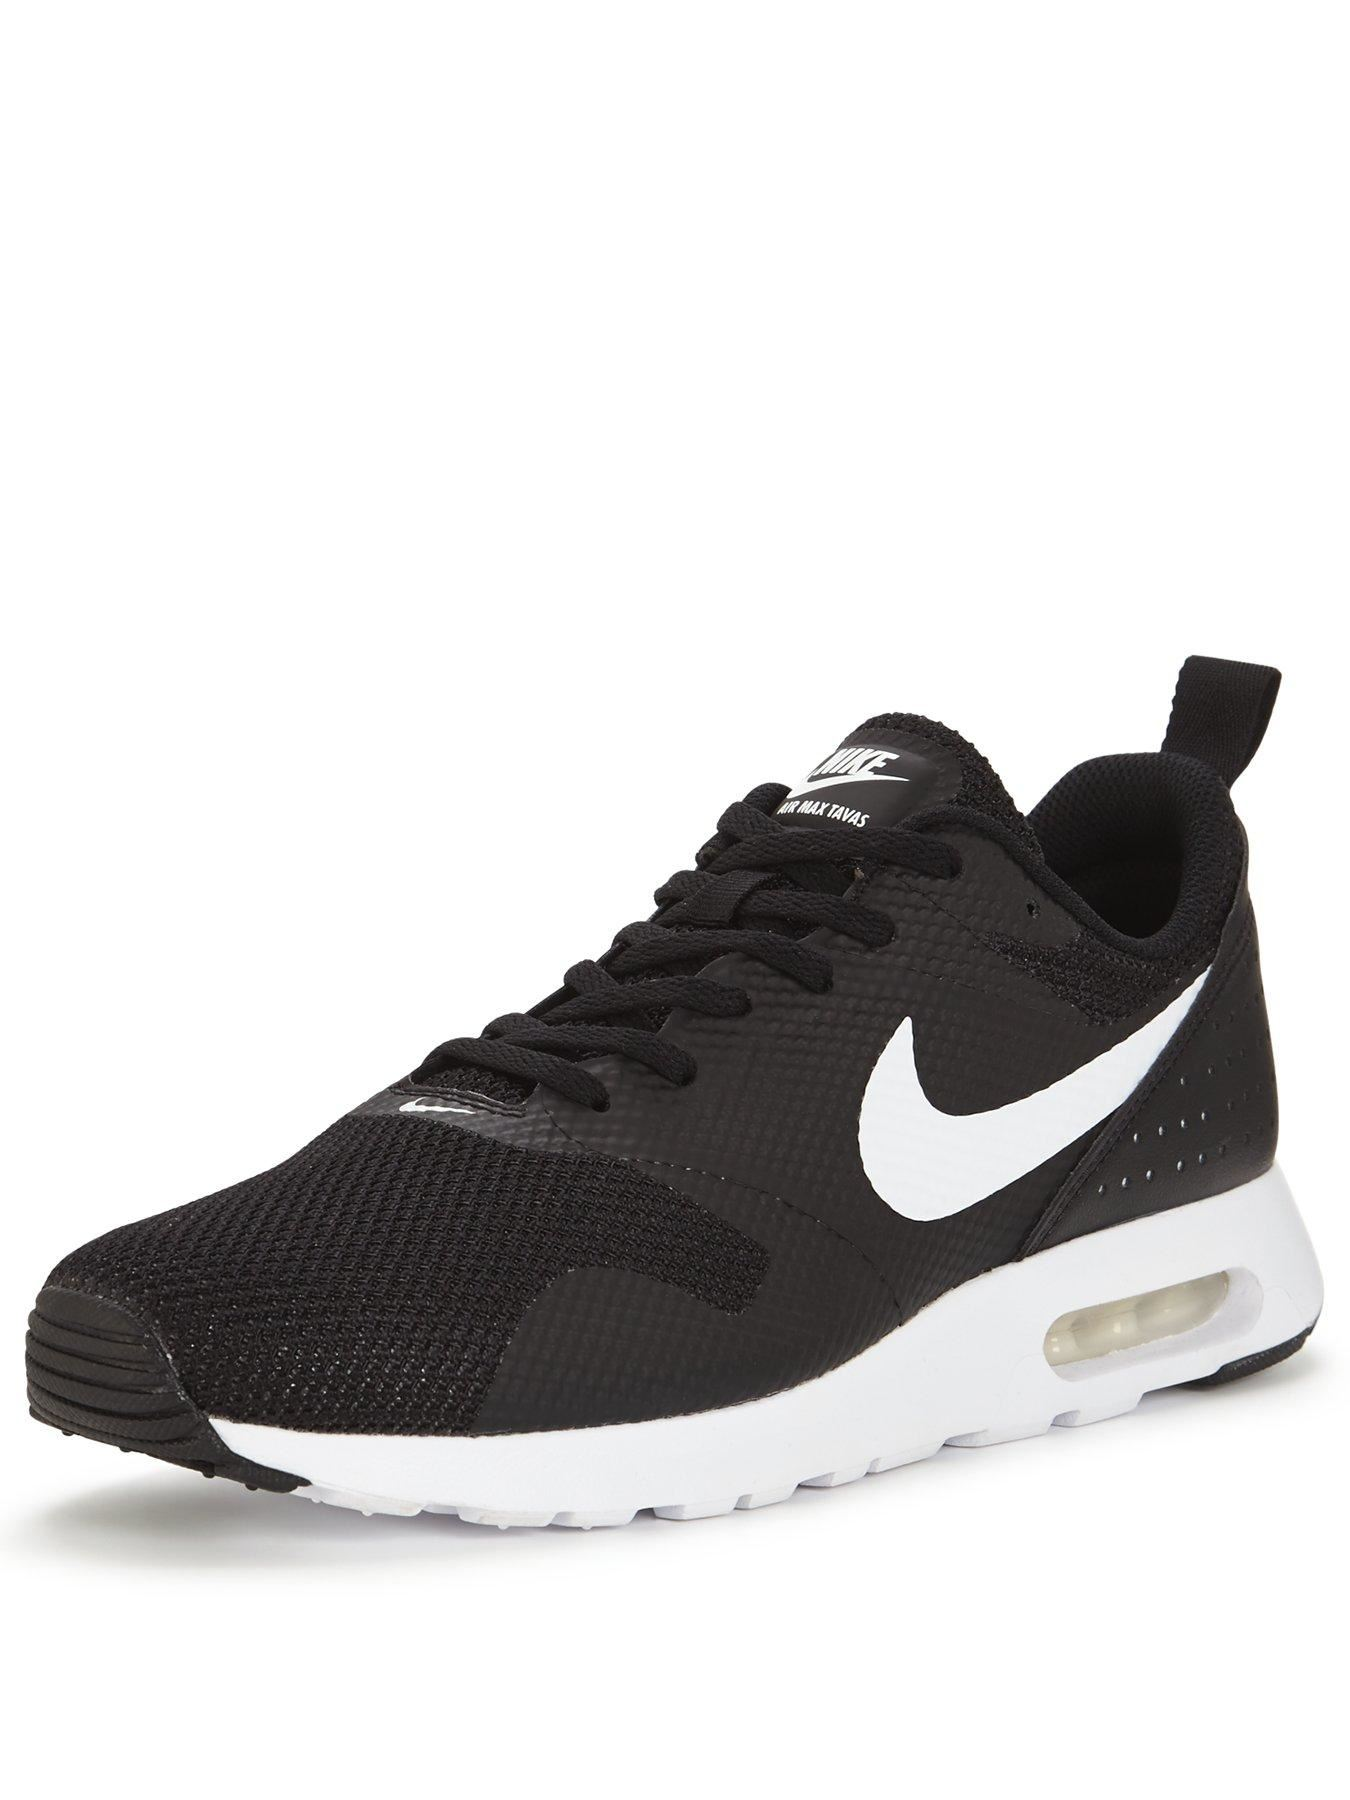 3027ca1c546f Details about NIKE AIR MAX TAVAS 705149 024 BLACK-WHITE MENS UK 6-11